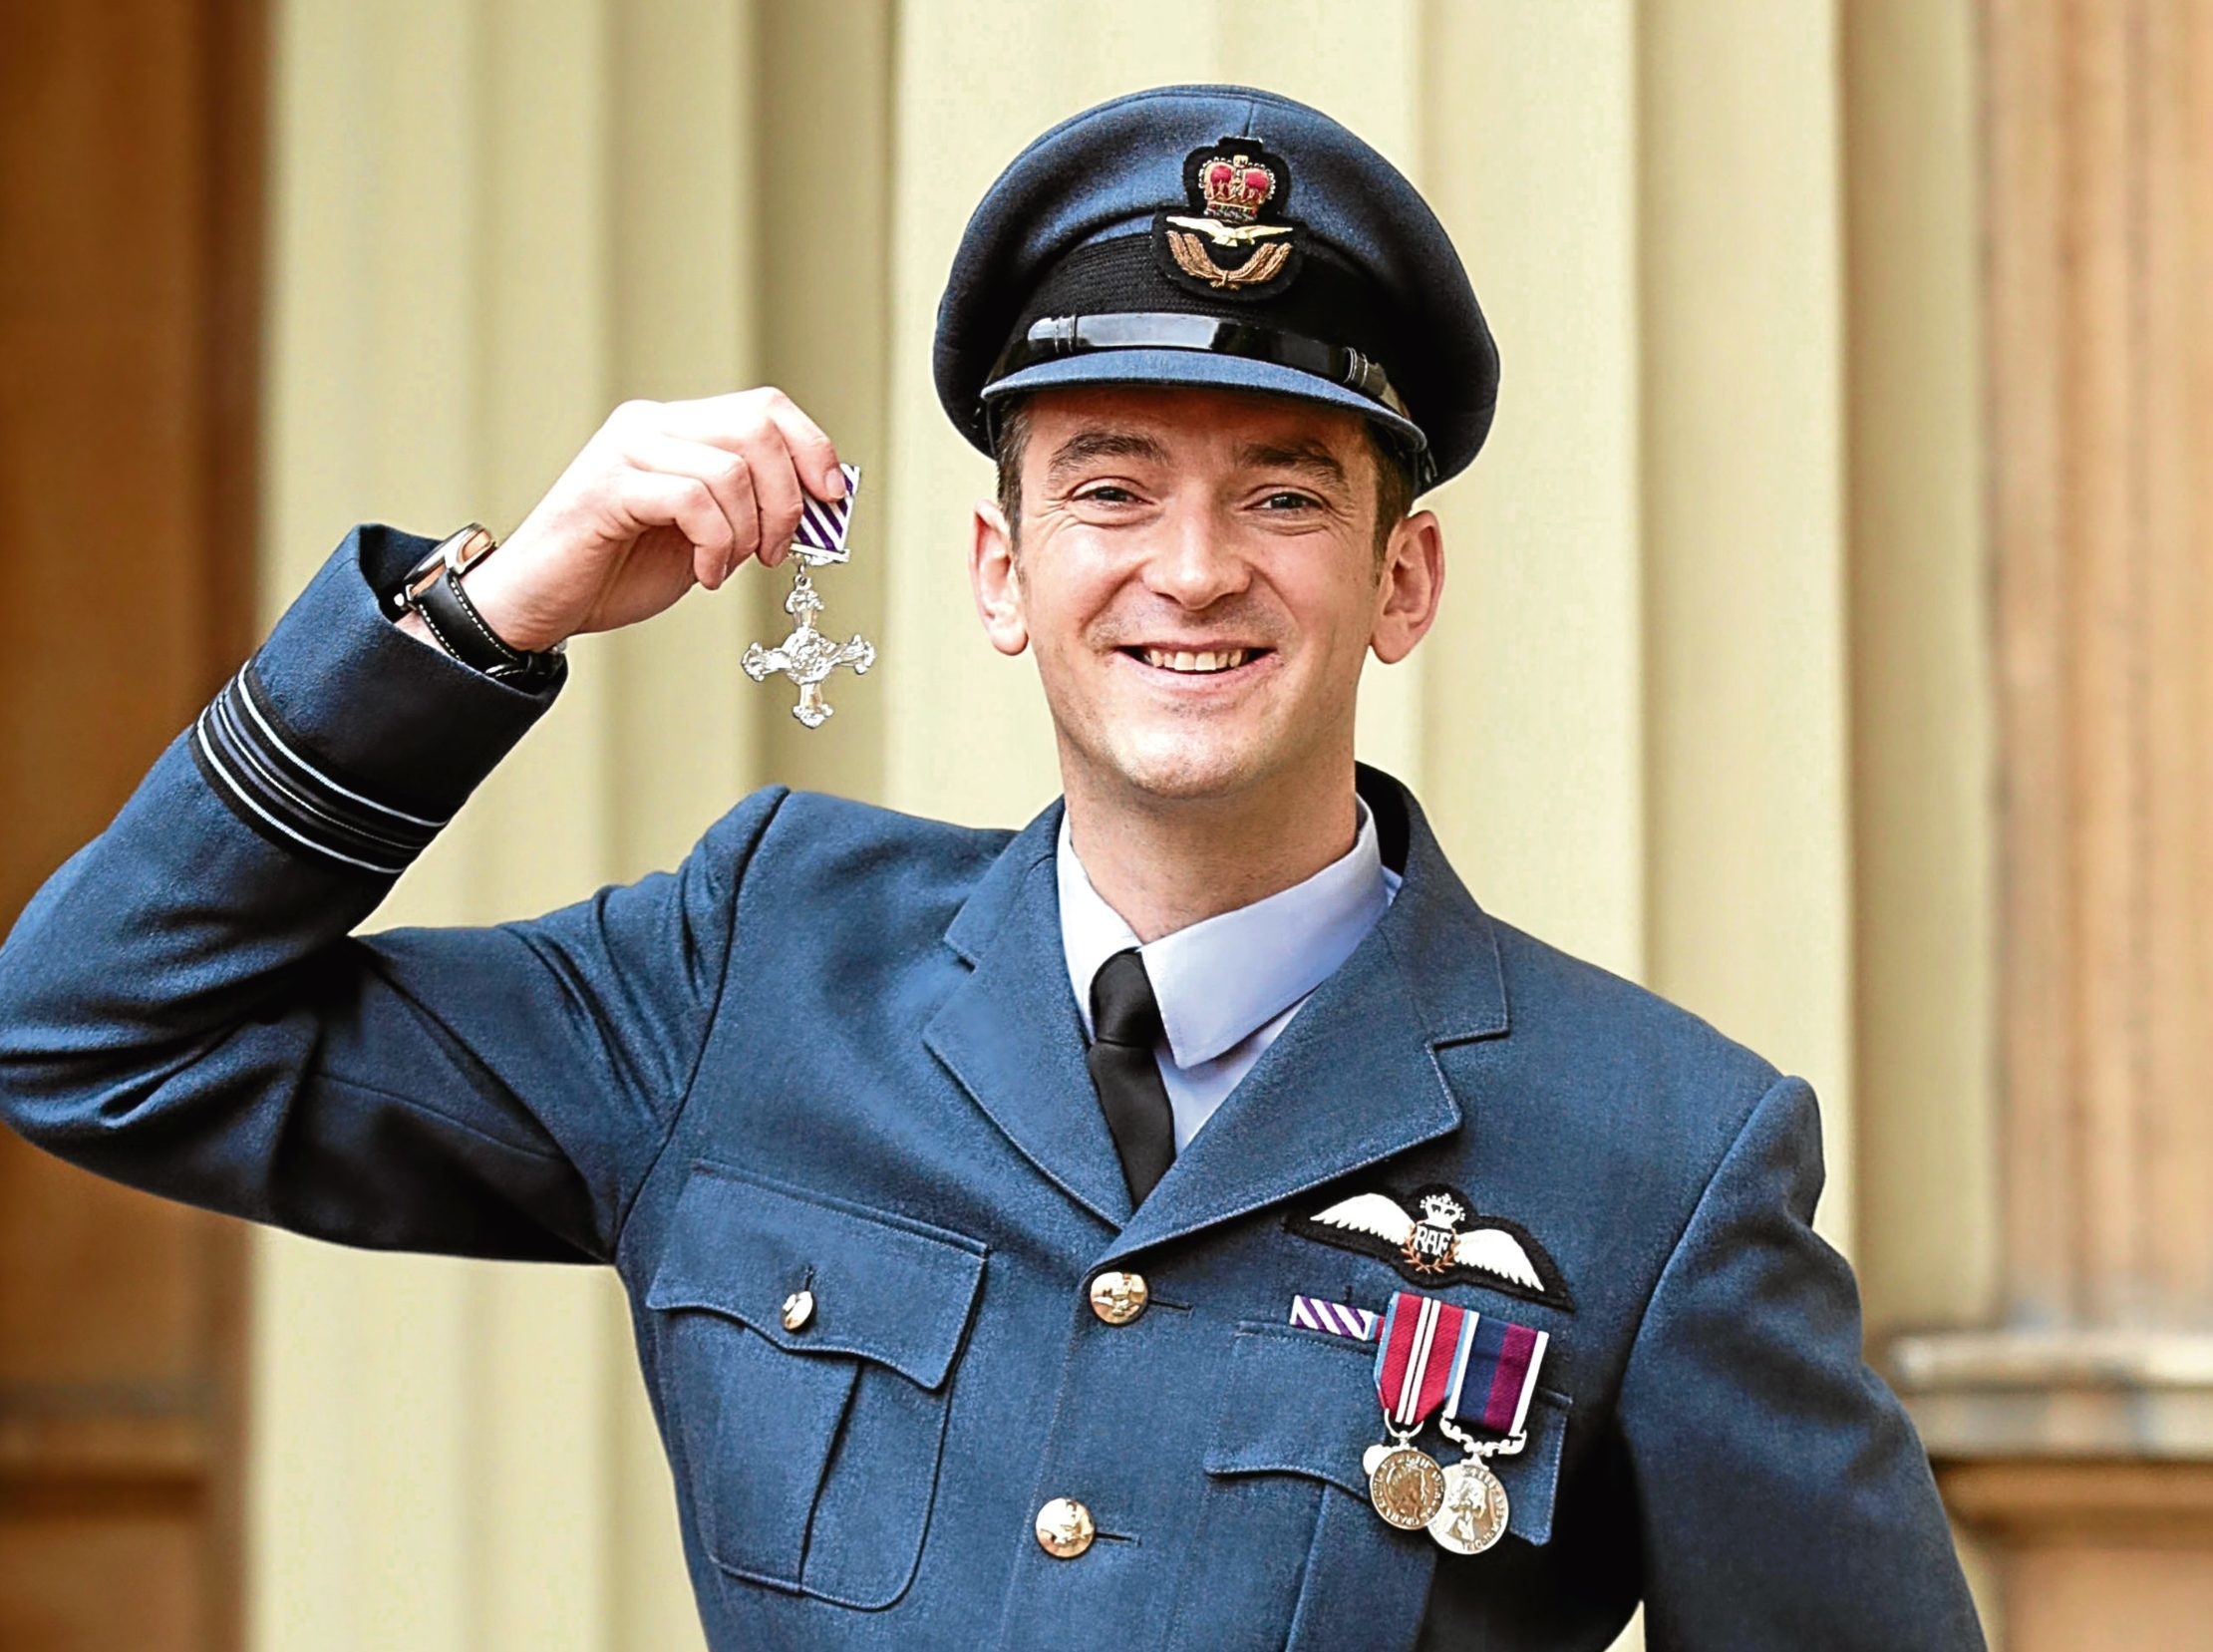 Squadron Leader Roger Cruickshank after being presented with a Distinguished Flying Cross by the Duke of Cambridge, at Buckingham Palace, London.